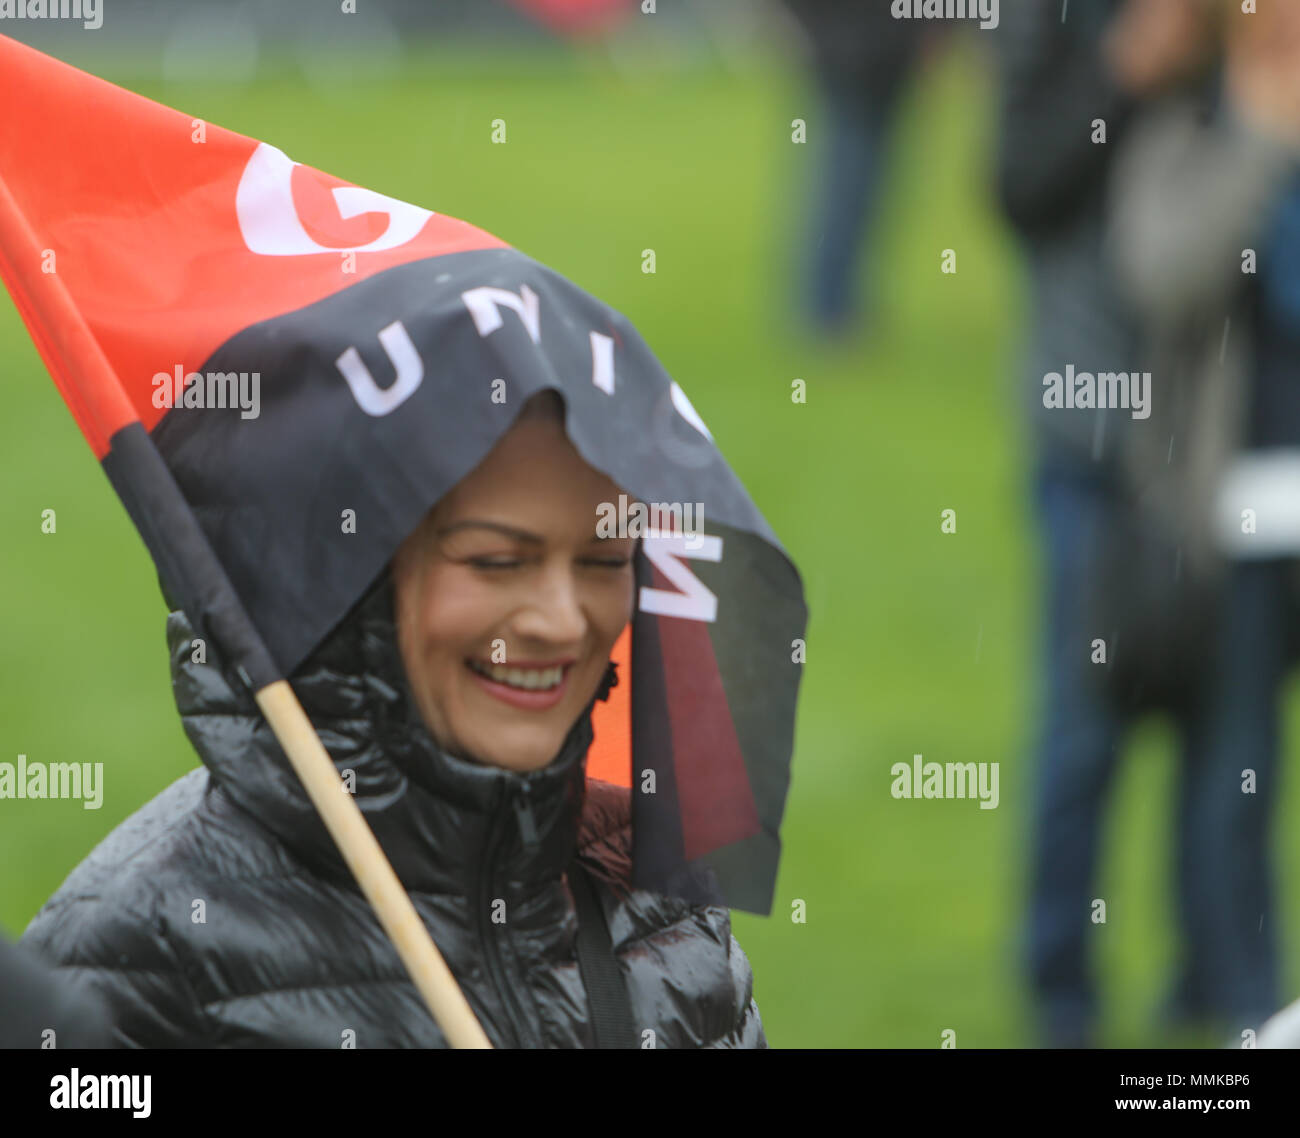 London UK 12 May 2018  Trades Union Congress (the umbrella organisation of Trade Unions) called a national demonstration under the slogan of 'A New Deal for Working People. Demanding  a real Living Wage for all workers, collective bargaining and union rights and an end to the 'gig-economy' .Speakers at the event were among many others Frances Lorraine O'Grady General Secretary of the British Trades Union Congress, Jeremy Corbyn Leader of the Labour Party and Leader of the Opposition since 2015. Credit: Paul Quezada-Neiman/Alamy Live News - Stock Image